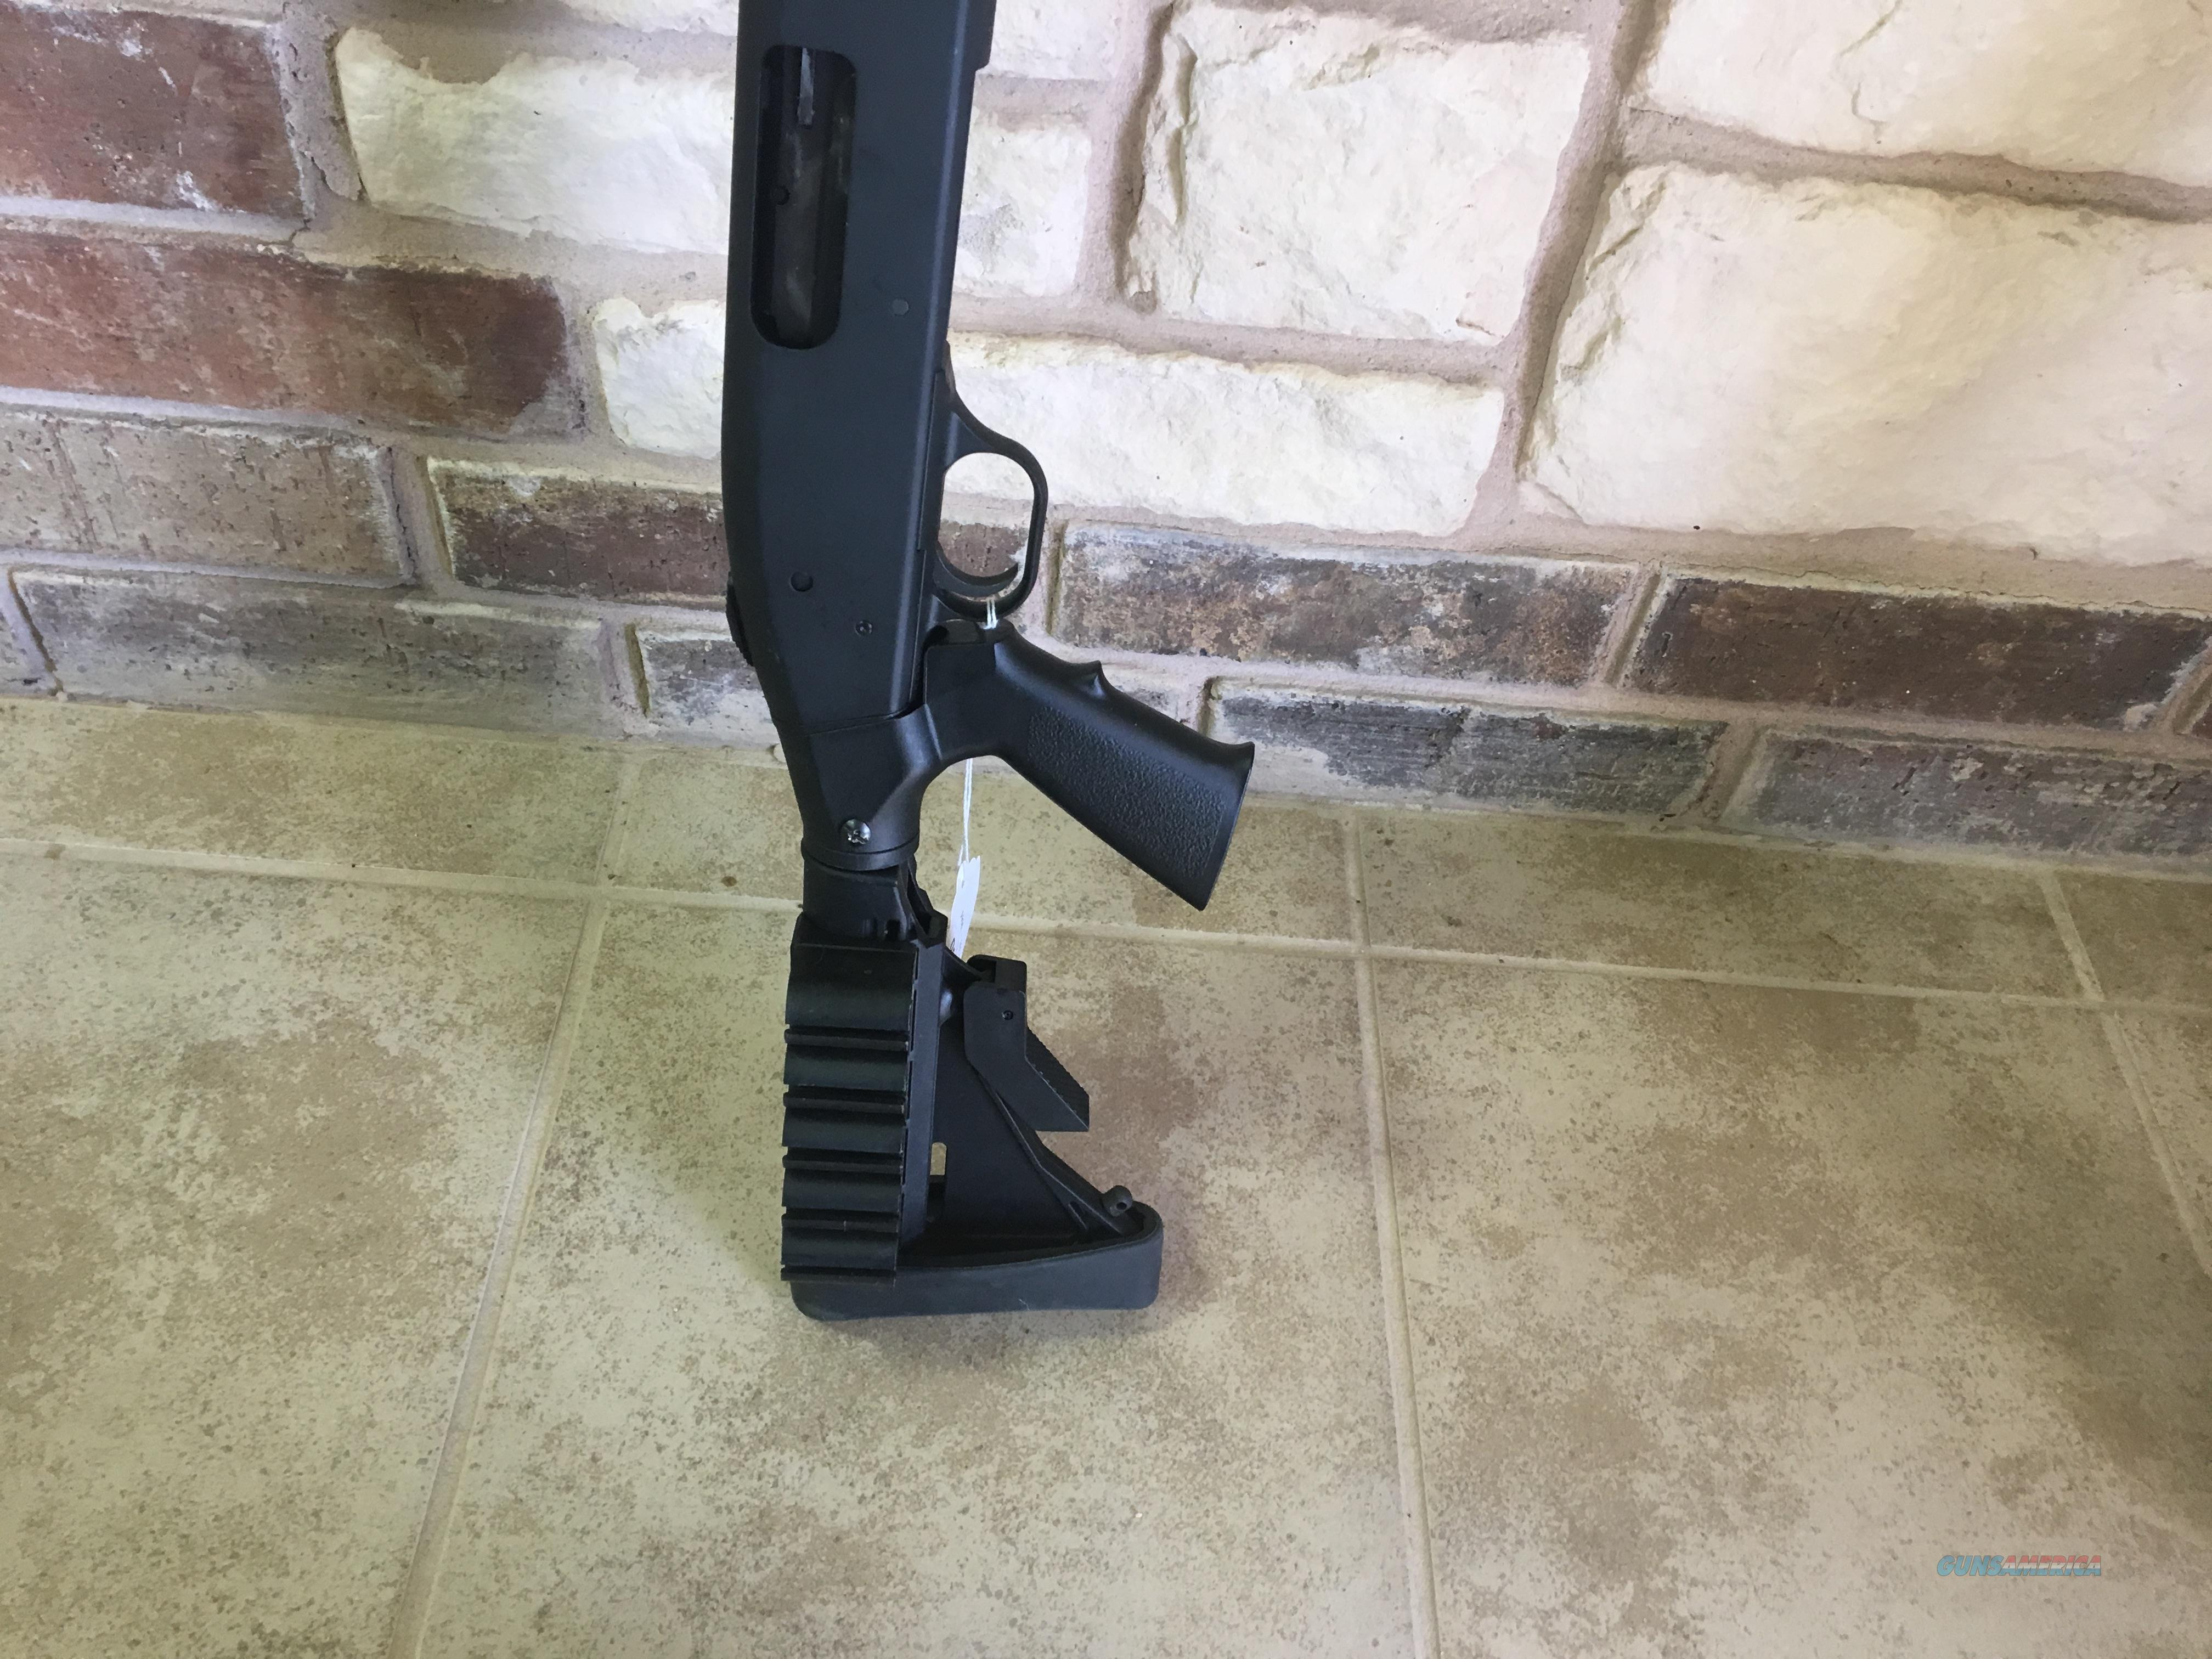 Mossberg 500 w/ Telescoping Stock and Side Saddle  Guns > Shotguns > Mossberg Shotguns > Pump > Tactical